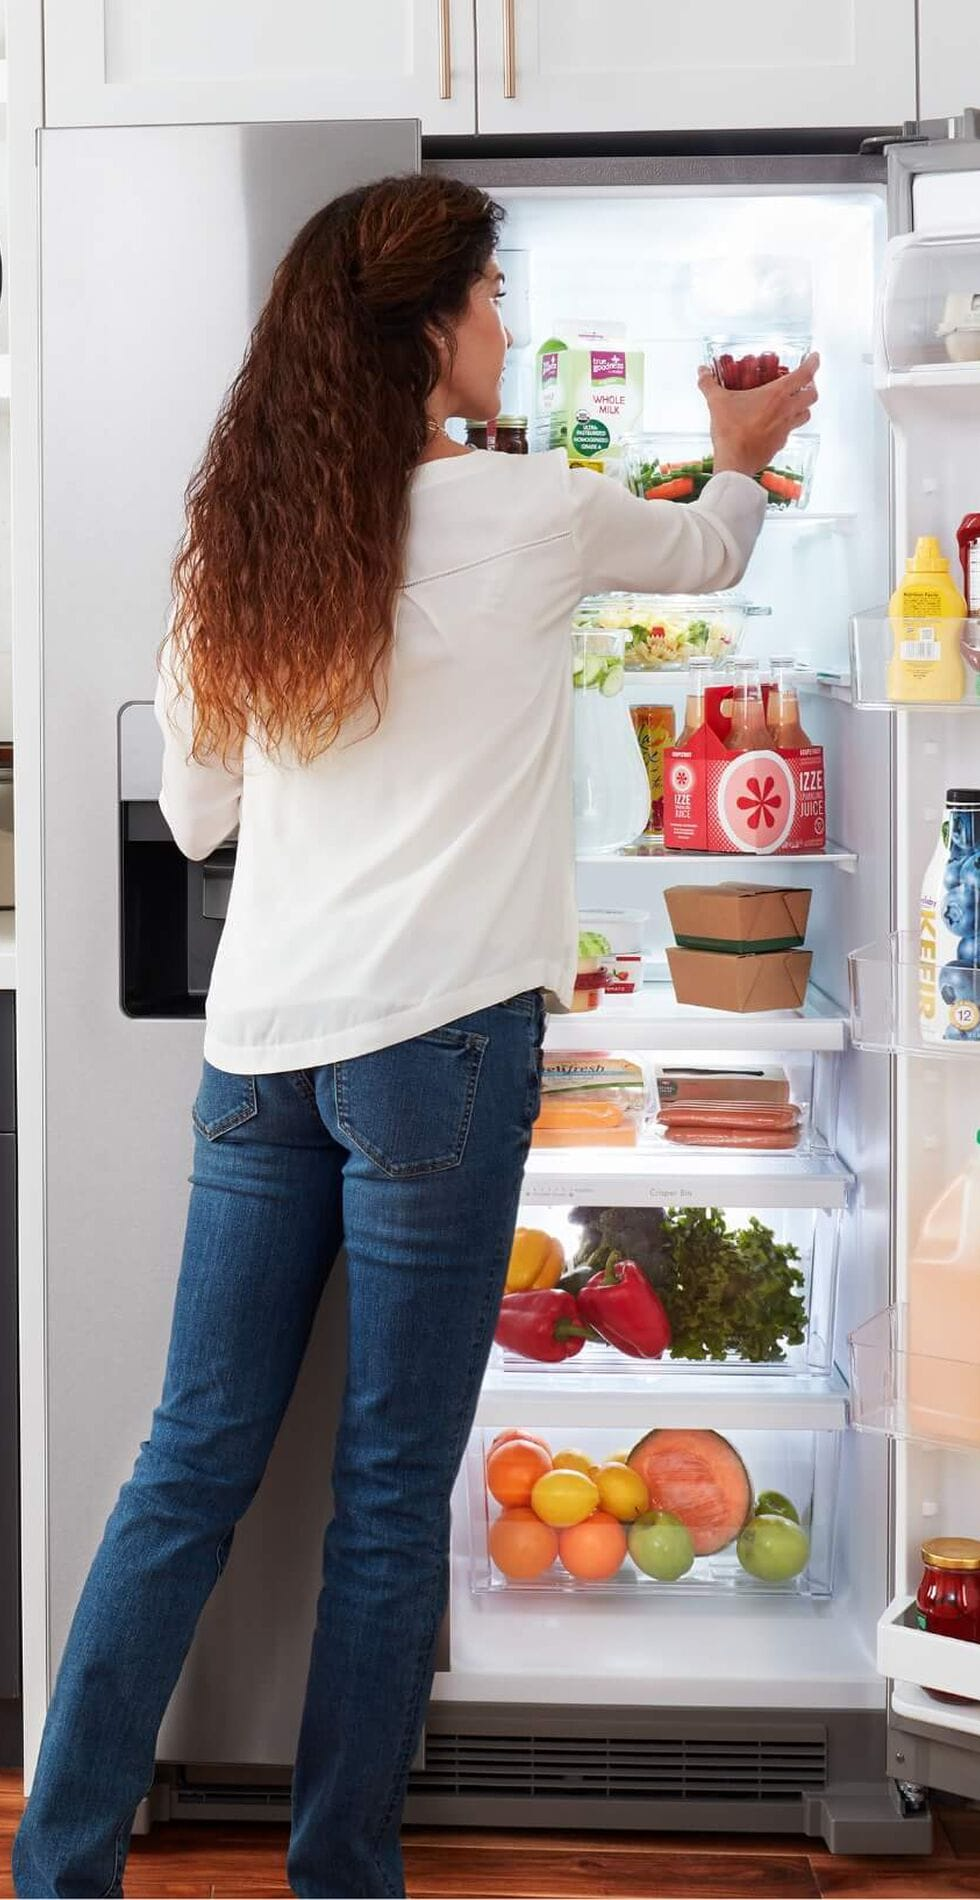 Person opening refrigerator to put away groceries